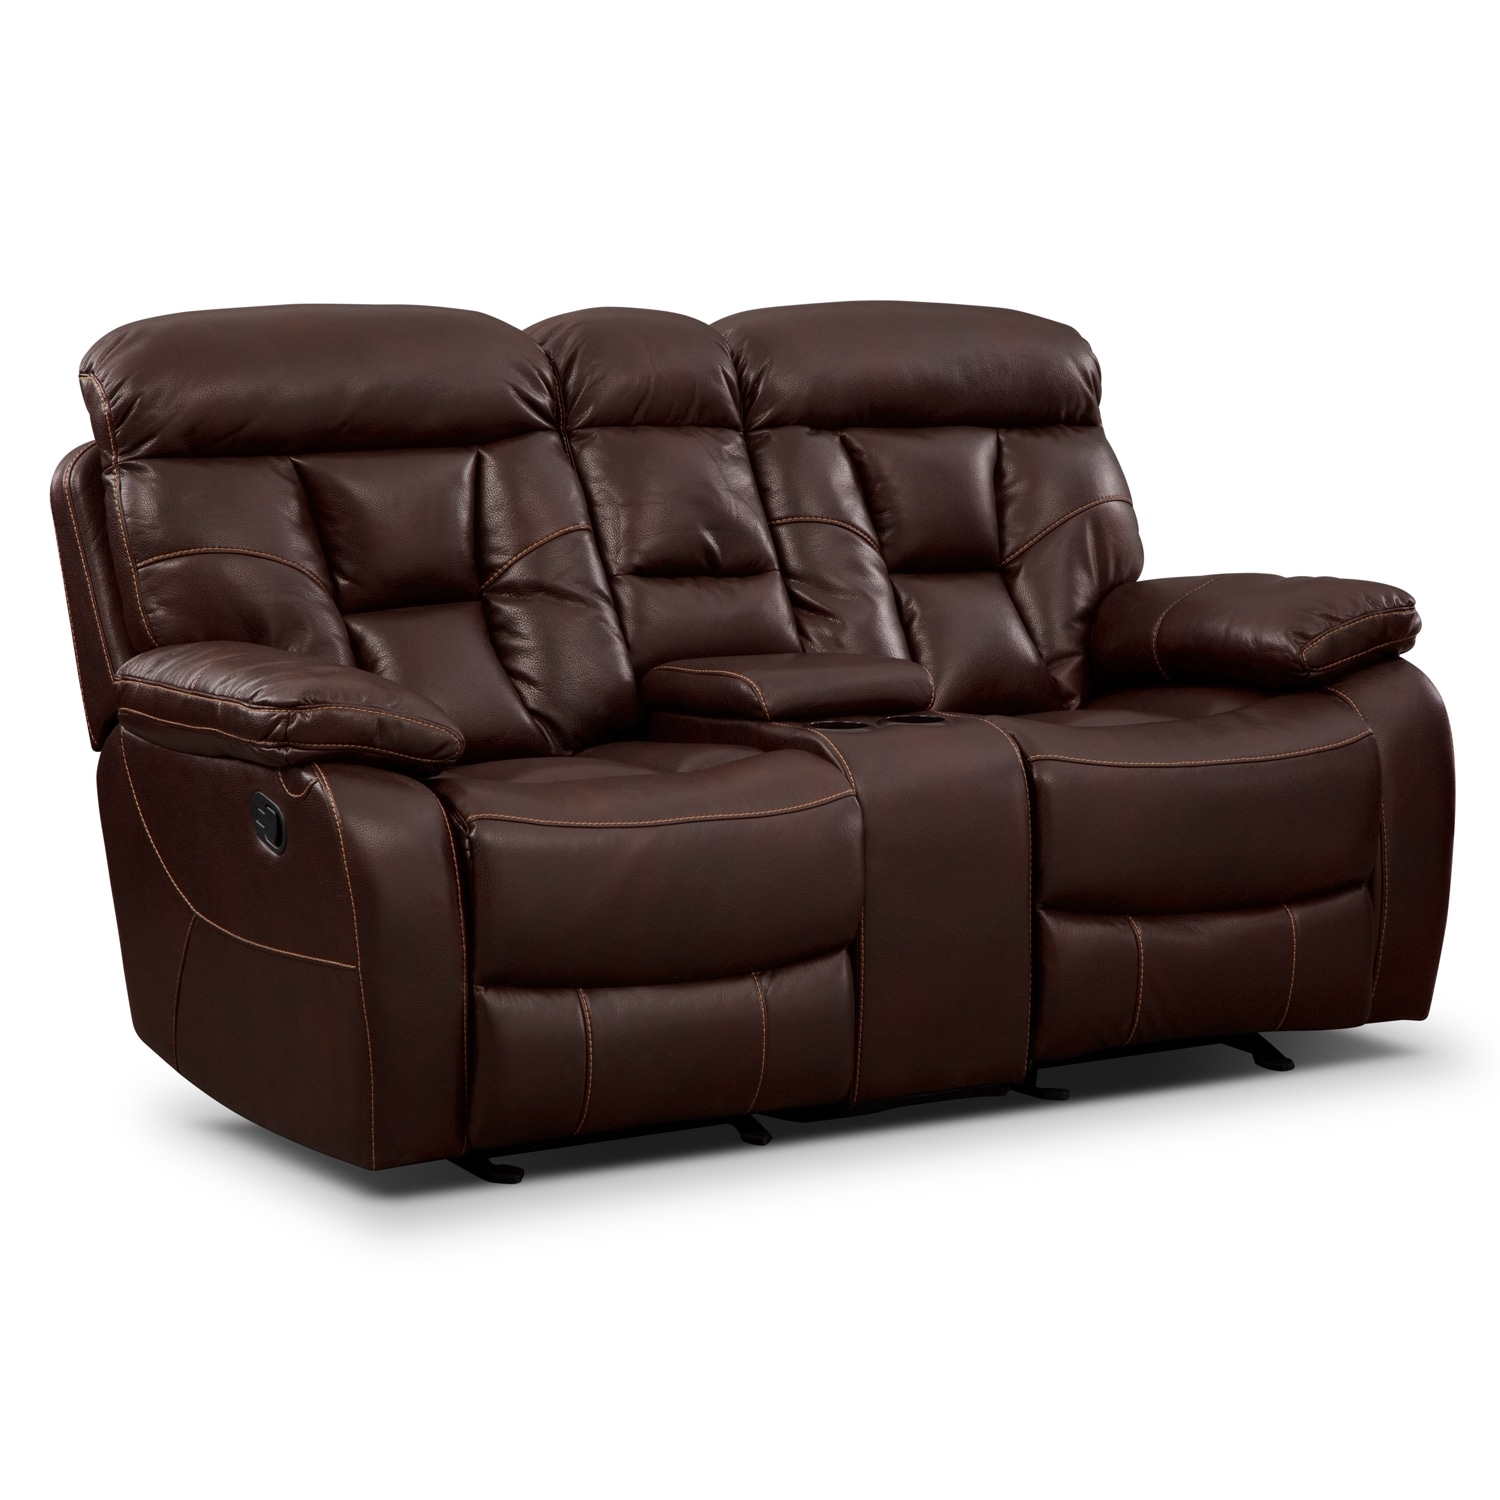 ... Gliding Reclining Loveseat with Console - Java. Hover to zoom  sc 1 st  Value City Furniture & Dakota Gliding Reclining Loveseat with Console - Java | Value City ... islam-shia.org